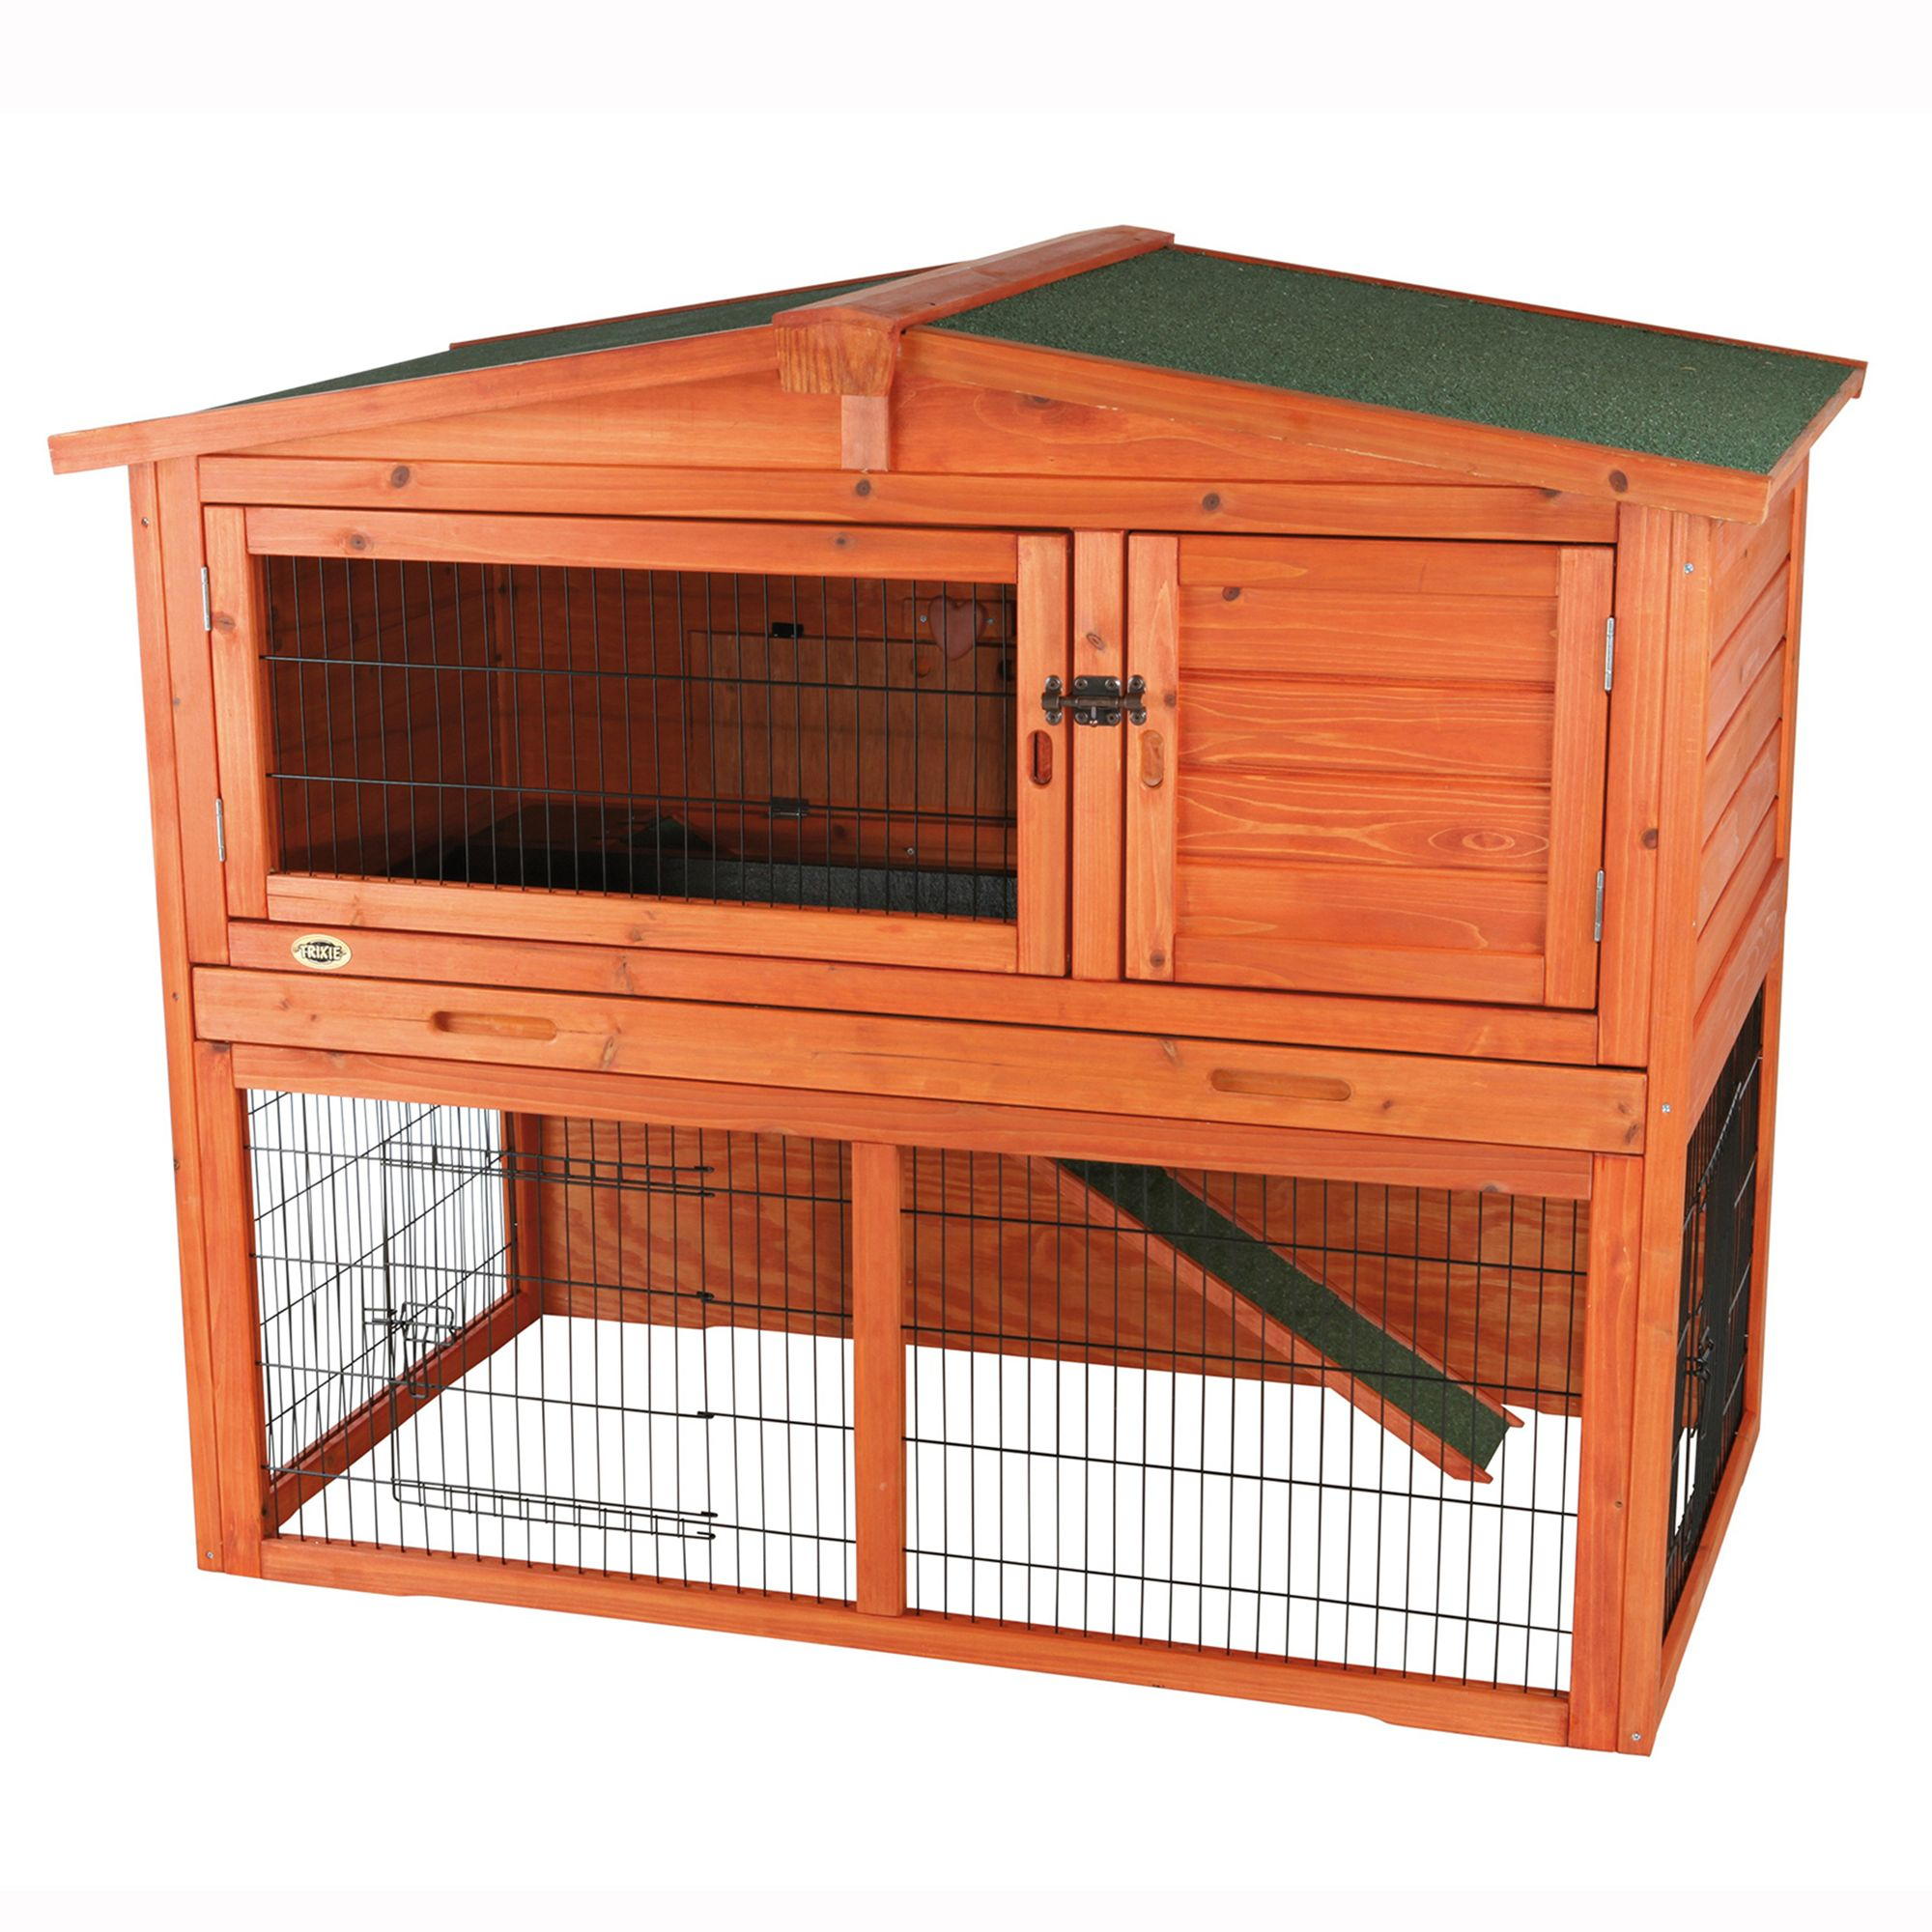 Trixie 2 Story Attic Rabbit Hutch Size Large